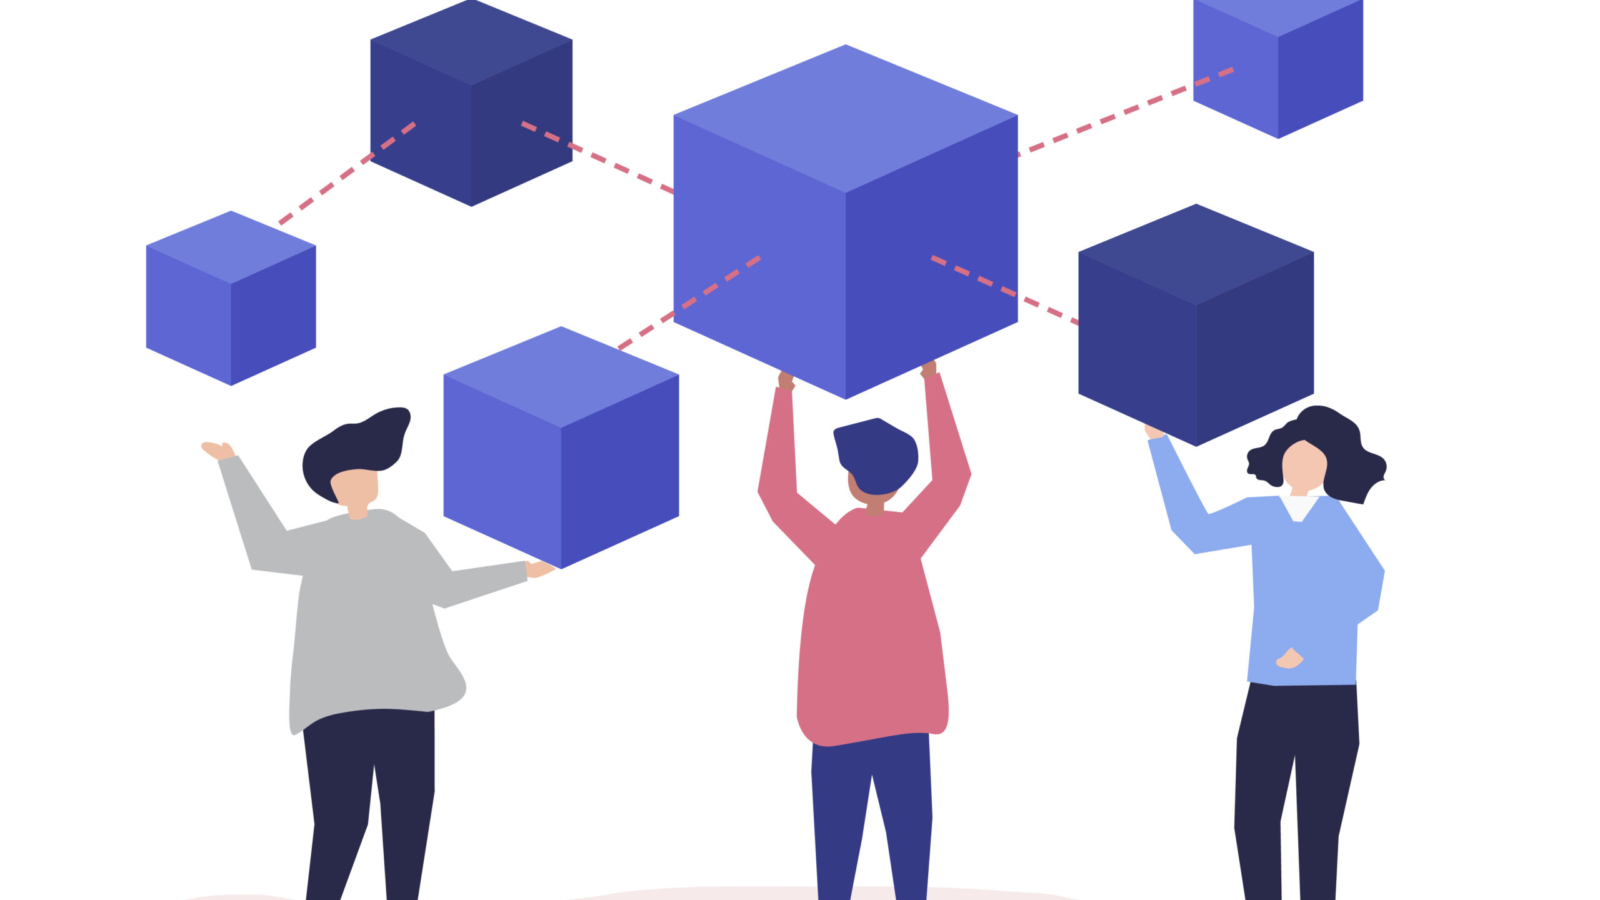 Characters of people holding a blockchain network illustration